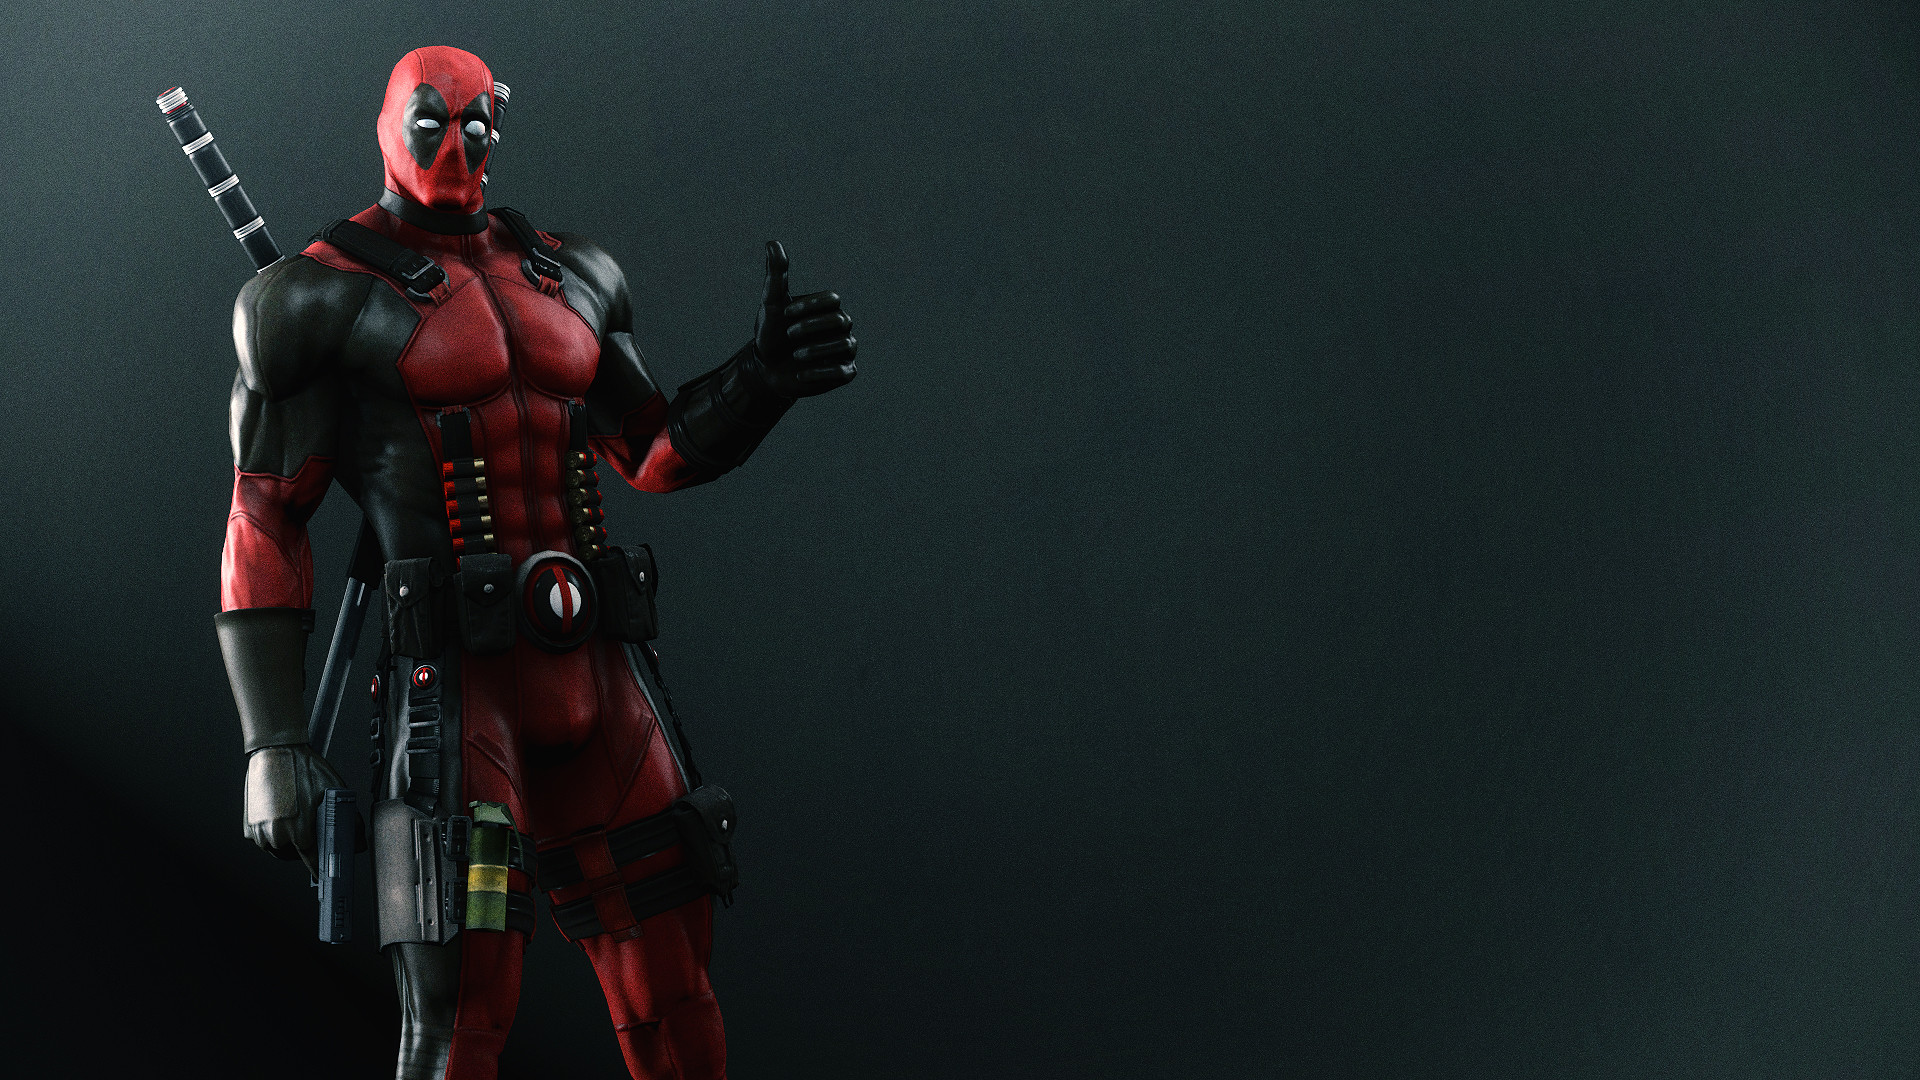 Res: 1920x1080, Deadpool Wallpaper by AngryRabbitGmoD Deadpool Wallpaper by AngryRabbitGmoD